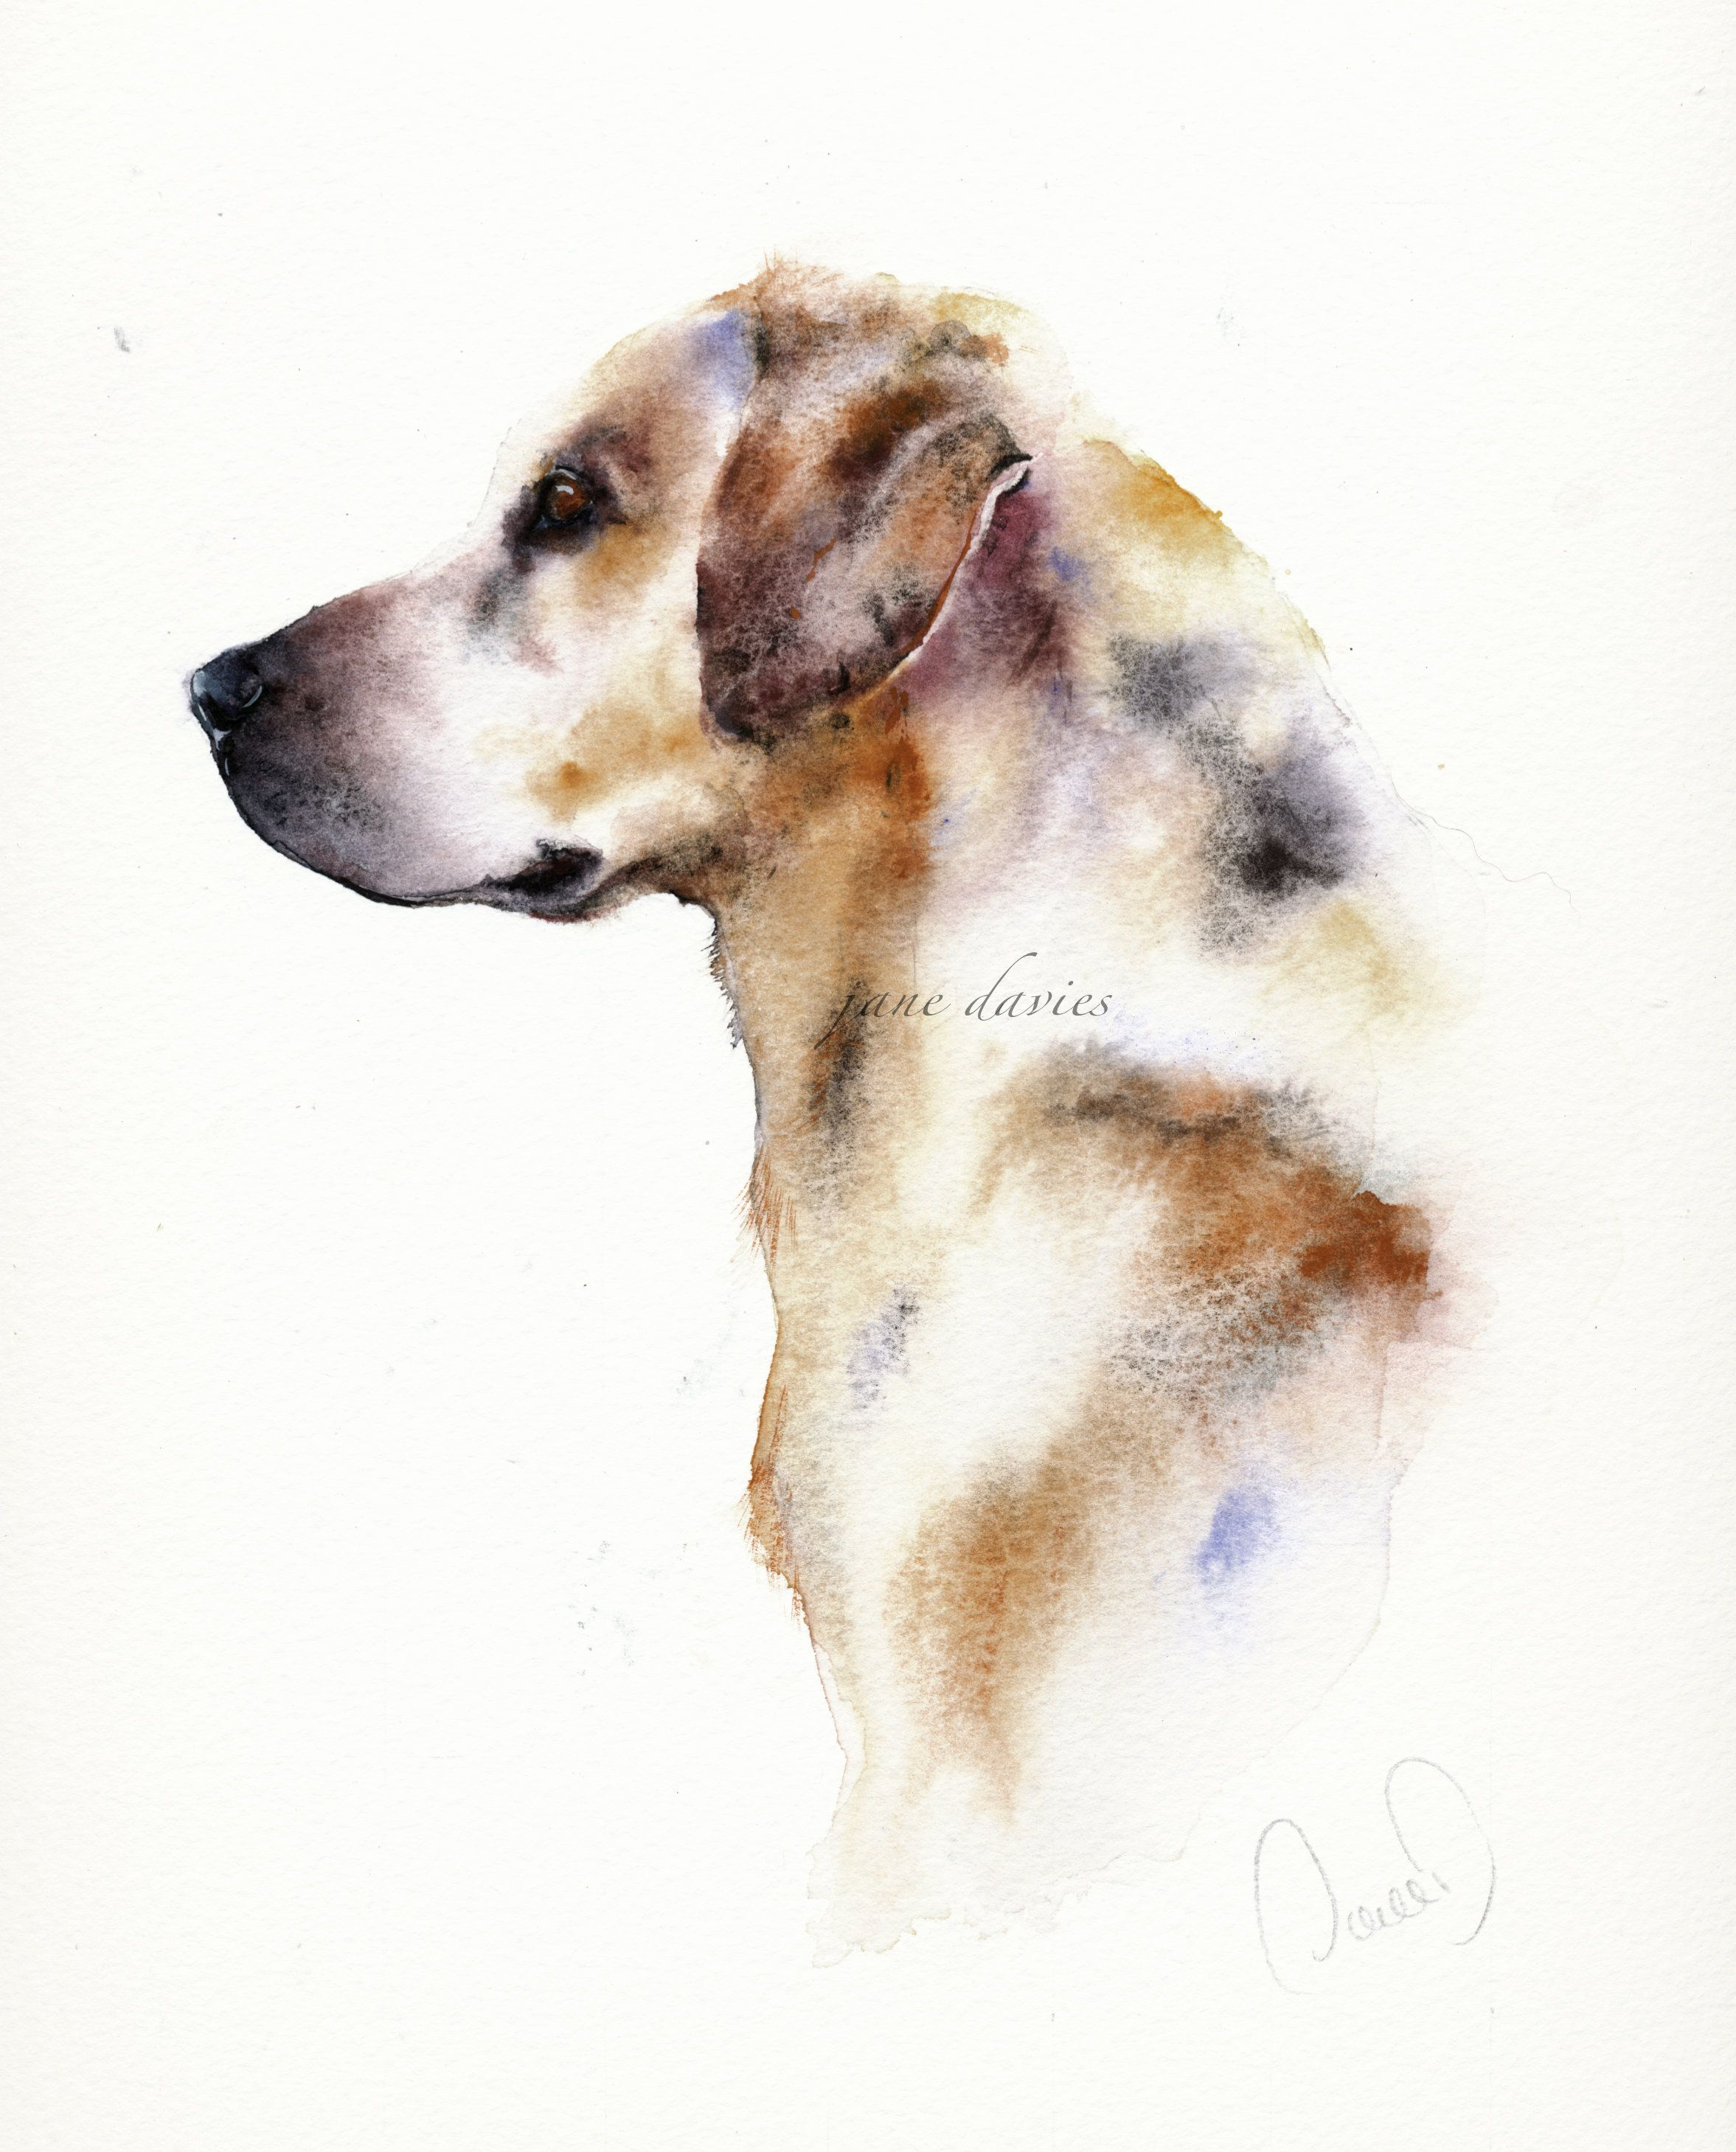 Labrador In Watercolour By Artist Jane Davies Watercolor Pet